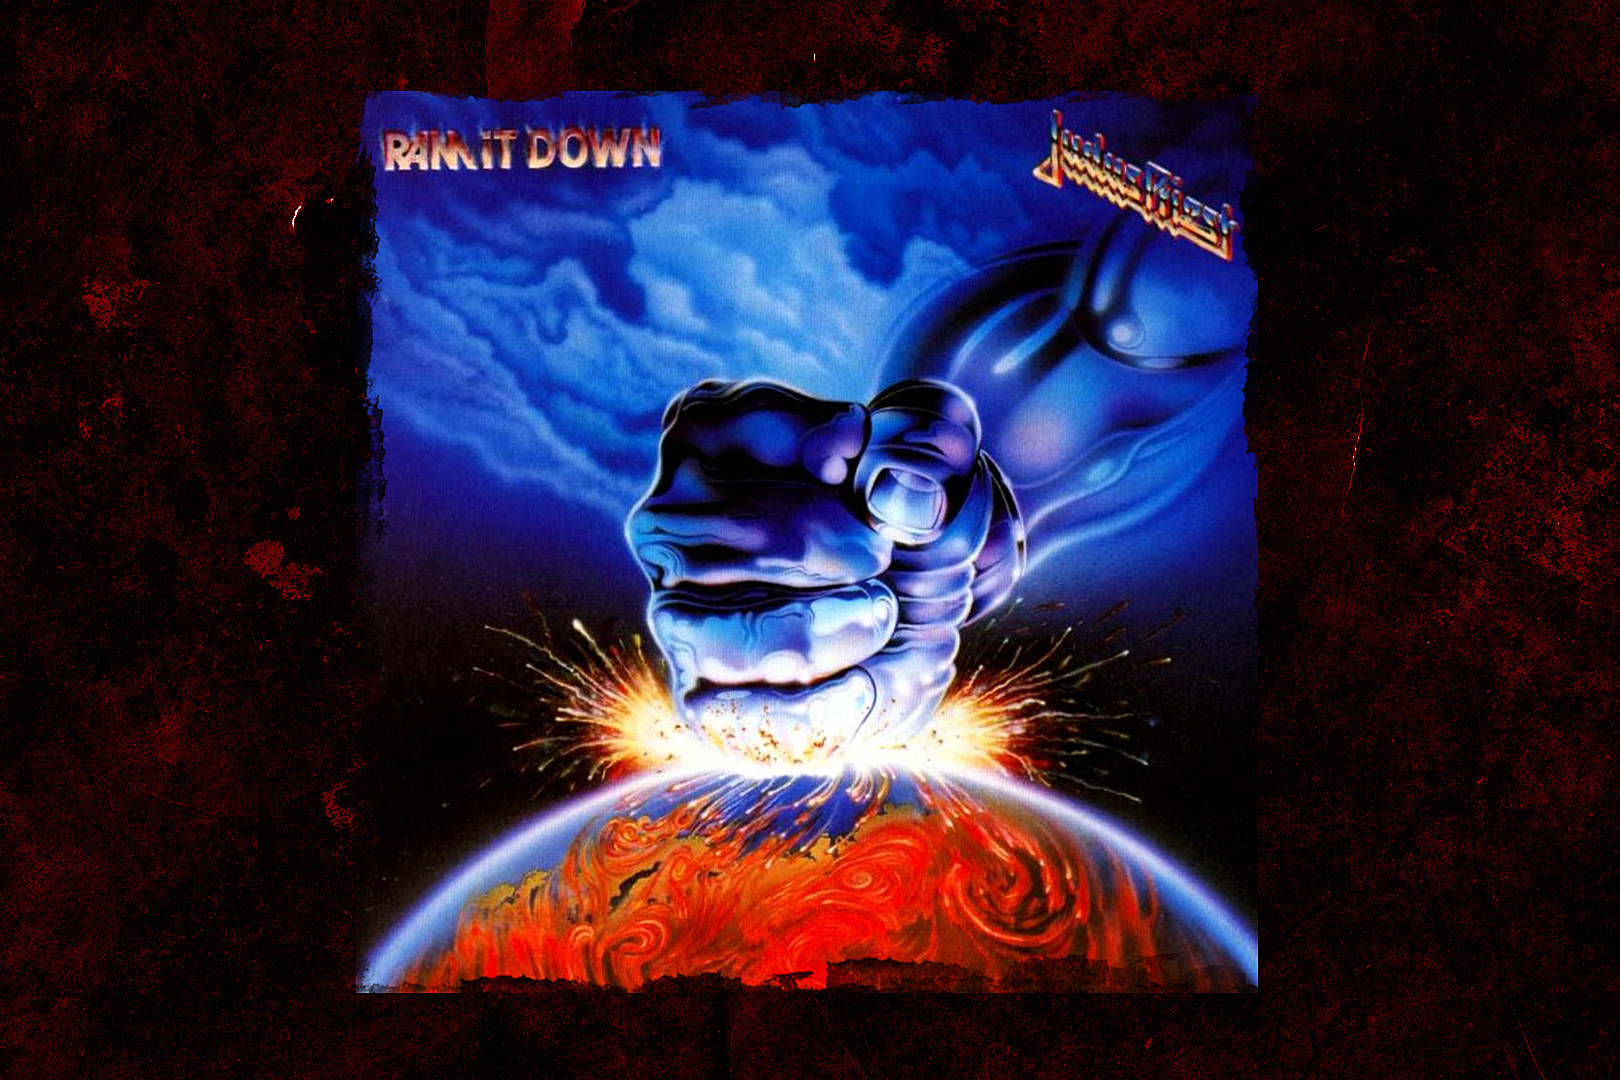 31 Years Ago: Judas Priest Flash Metal Form on Experimental 'Ram It Down'